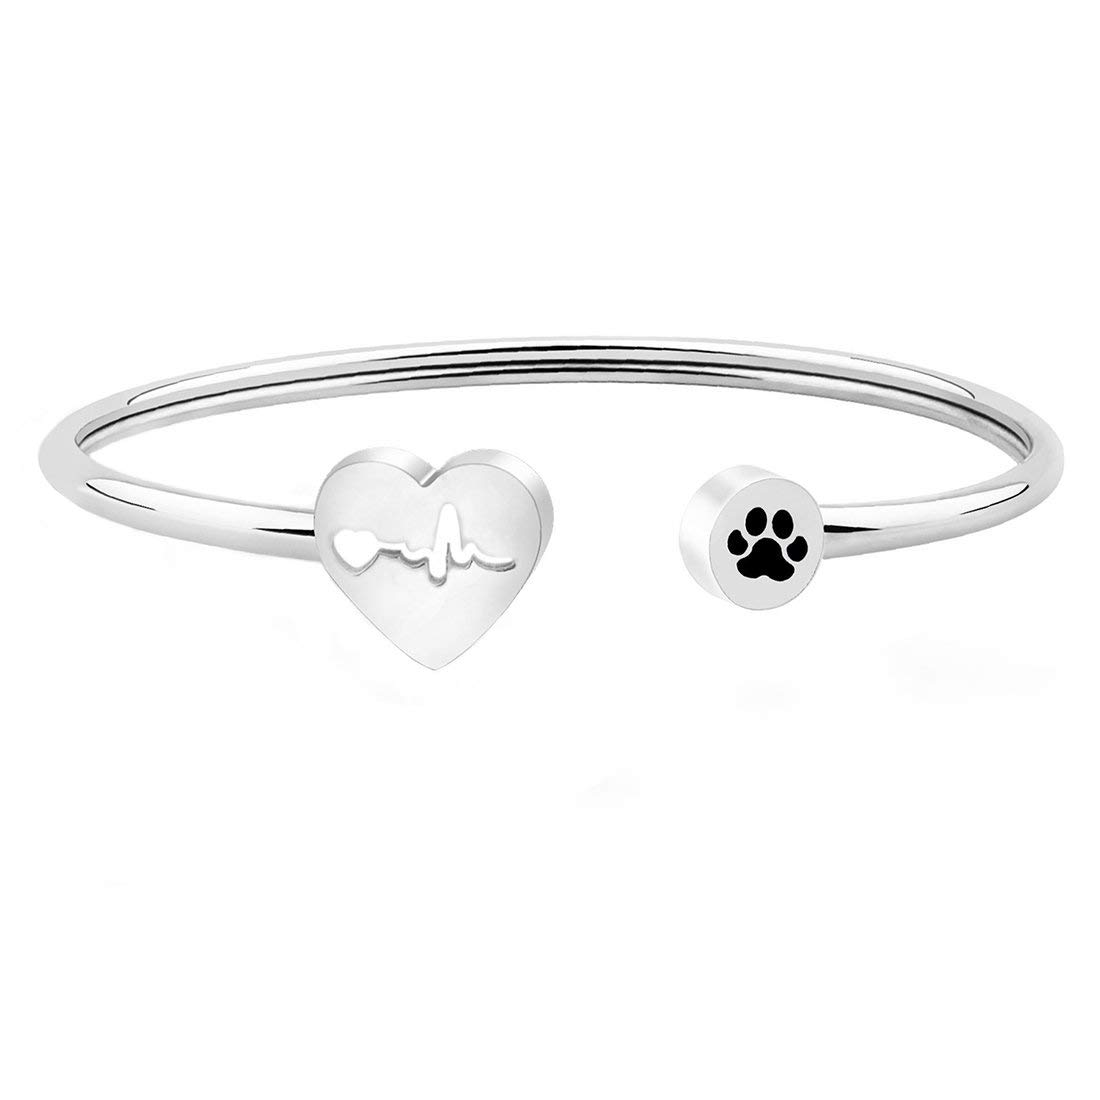 bed48b520 WUSUANED Heart Beat Dog Paw Necklace Bracelet Vet Tech Jewelry Gift for  Veterinarian Nurse Vet Students